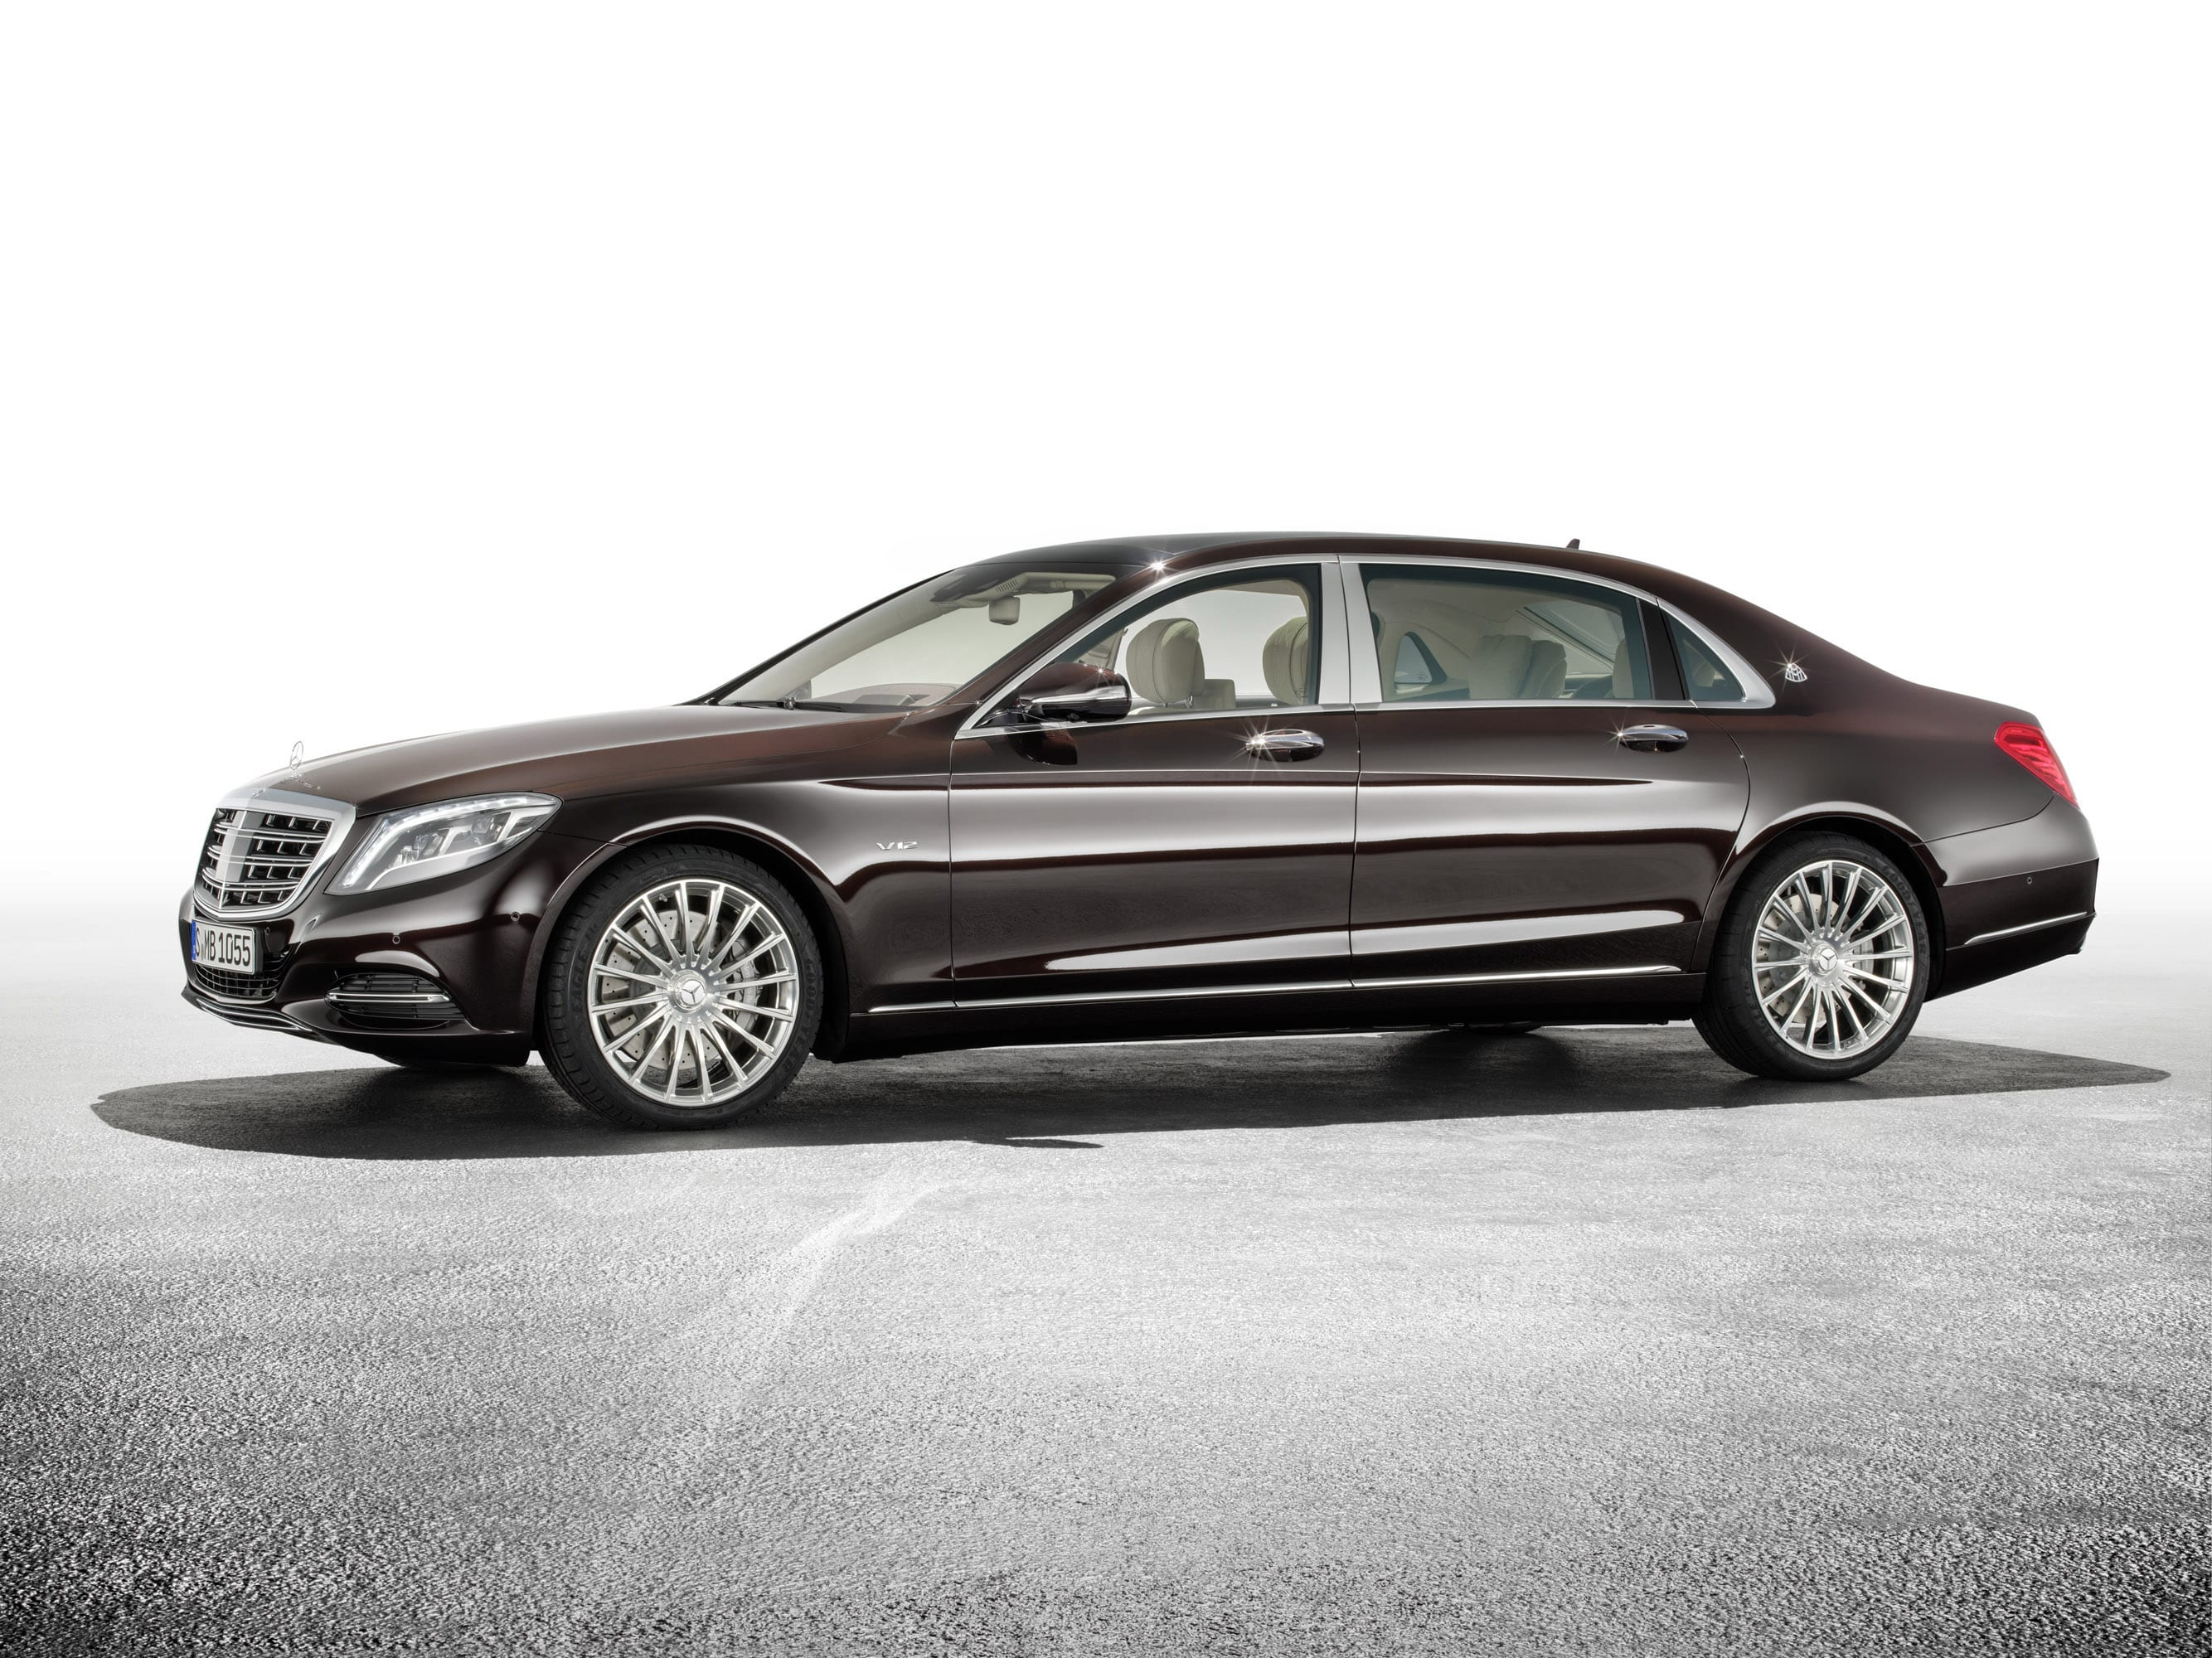 Mercedes-Maybach S-Class Backgrounds